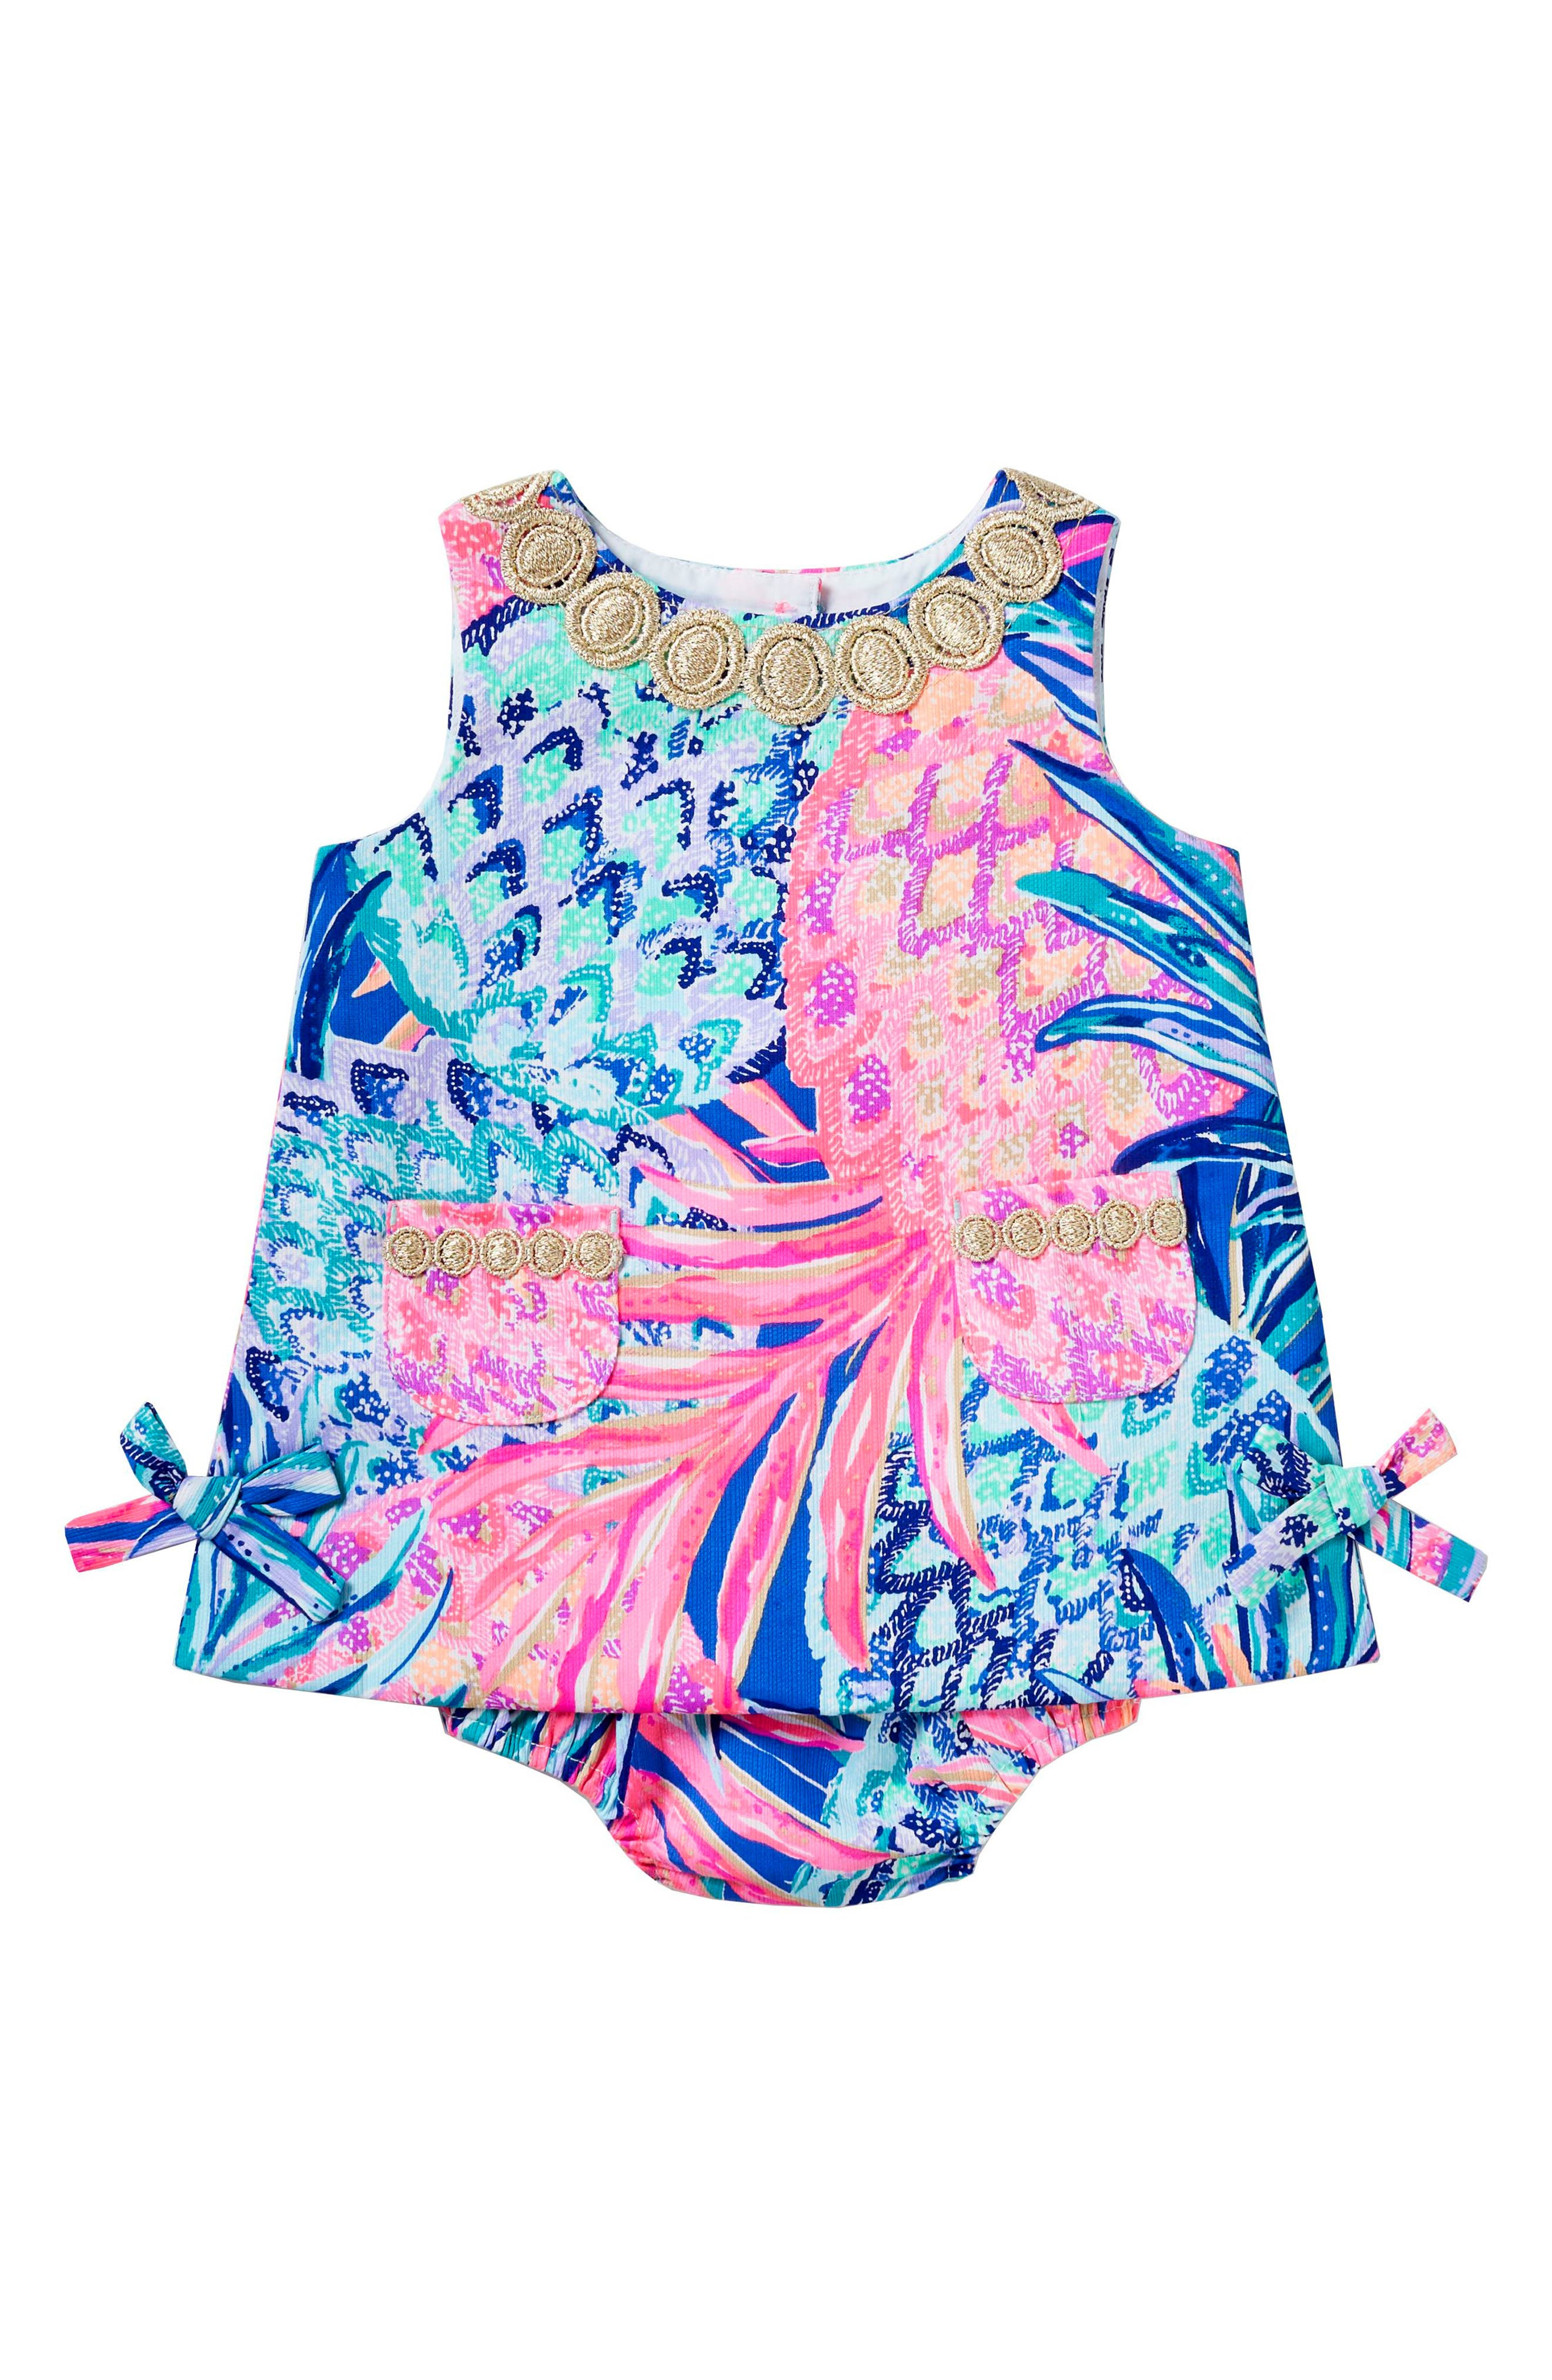 Lilly Pulitzer Baby Items Clothing Gear Shoes and More